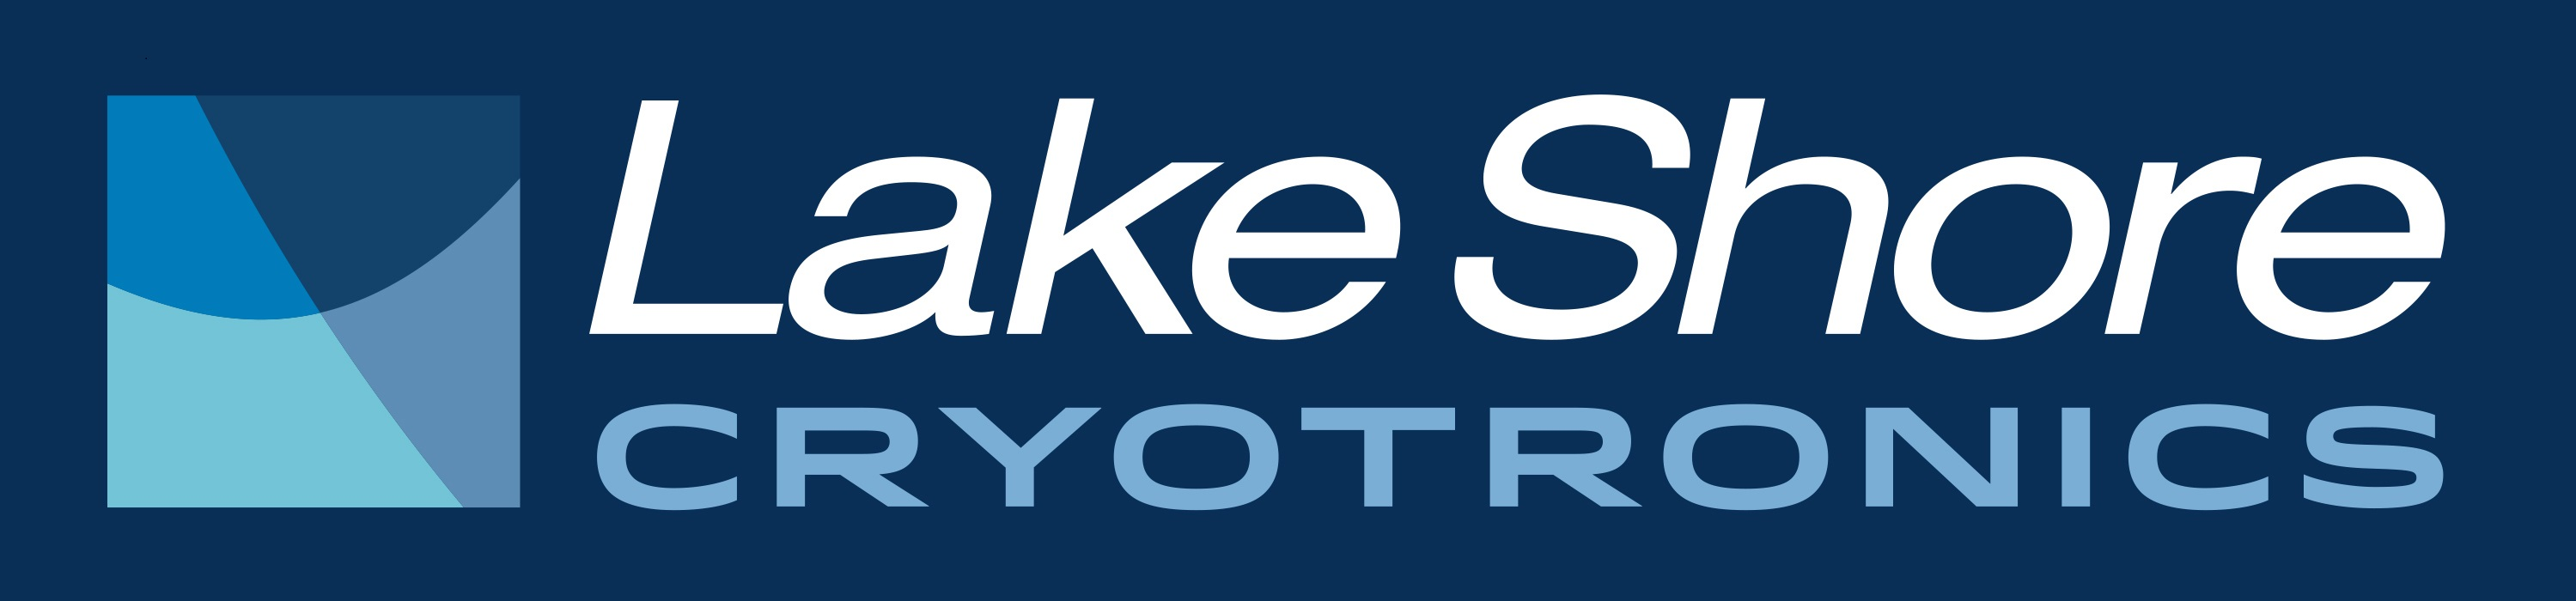 Lake Shore Cryotronics Logo